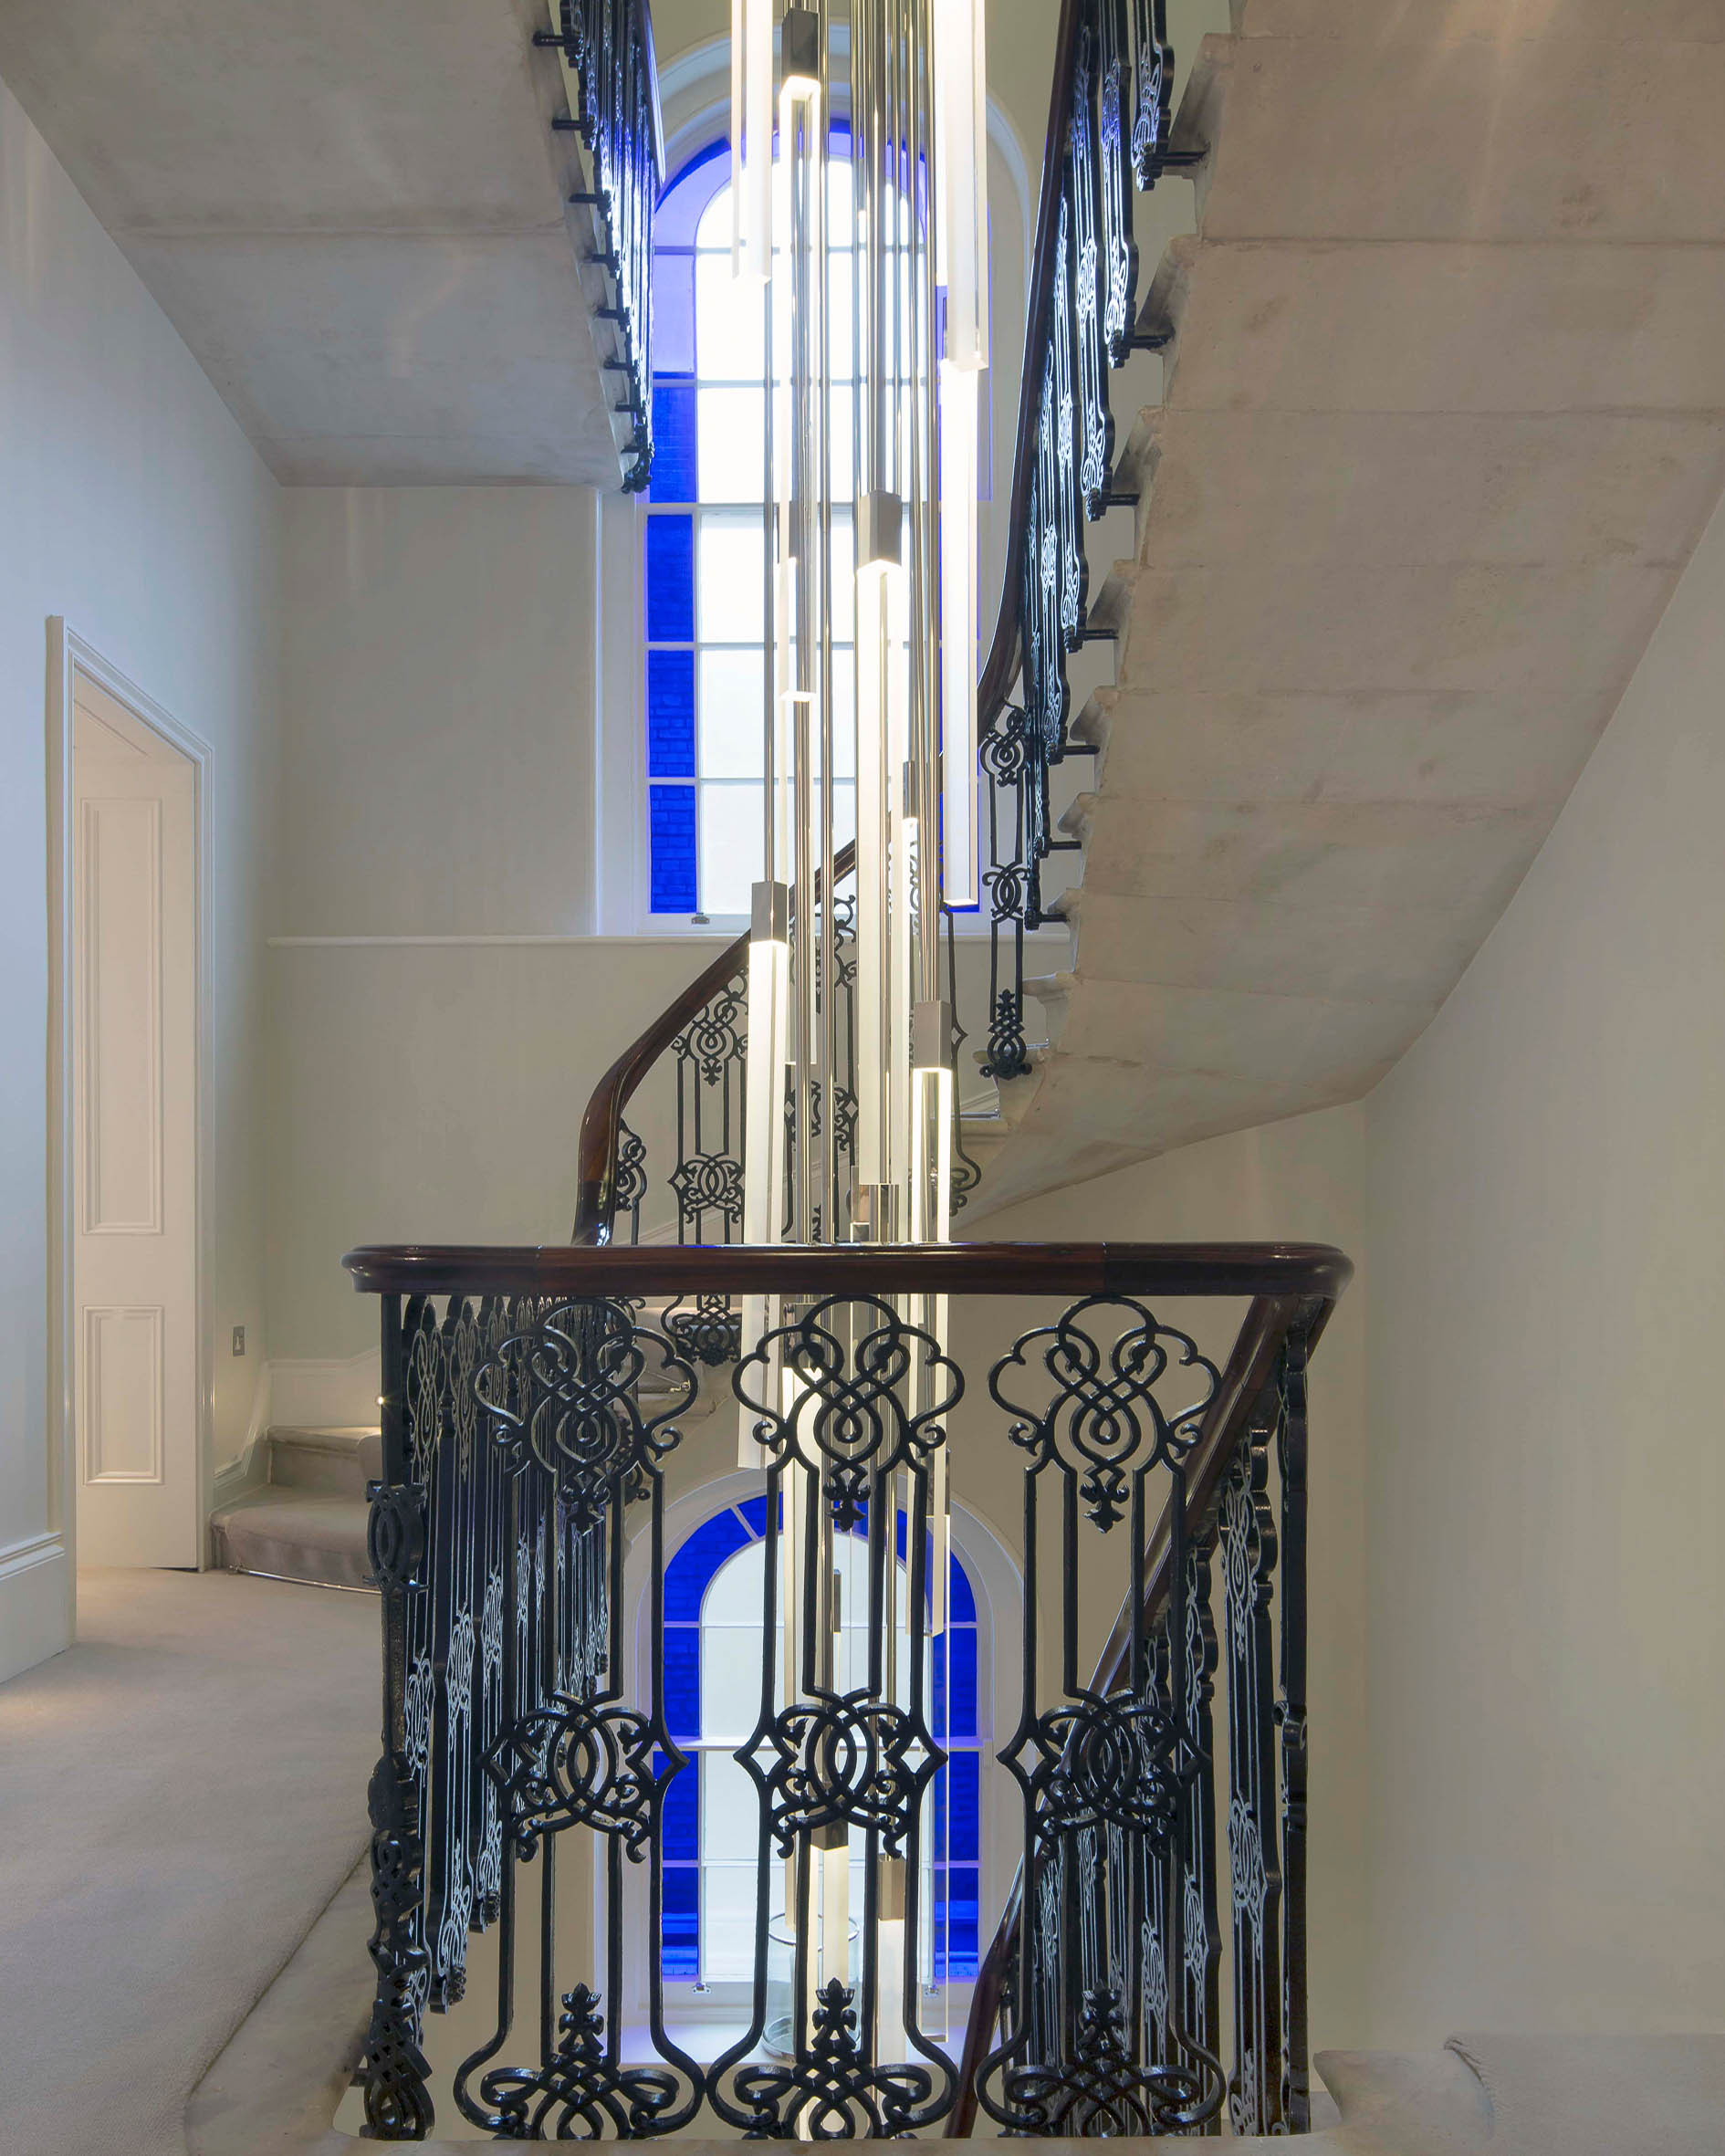 The refurbished main staircase surrounding a new modern light sculpture